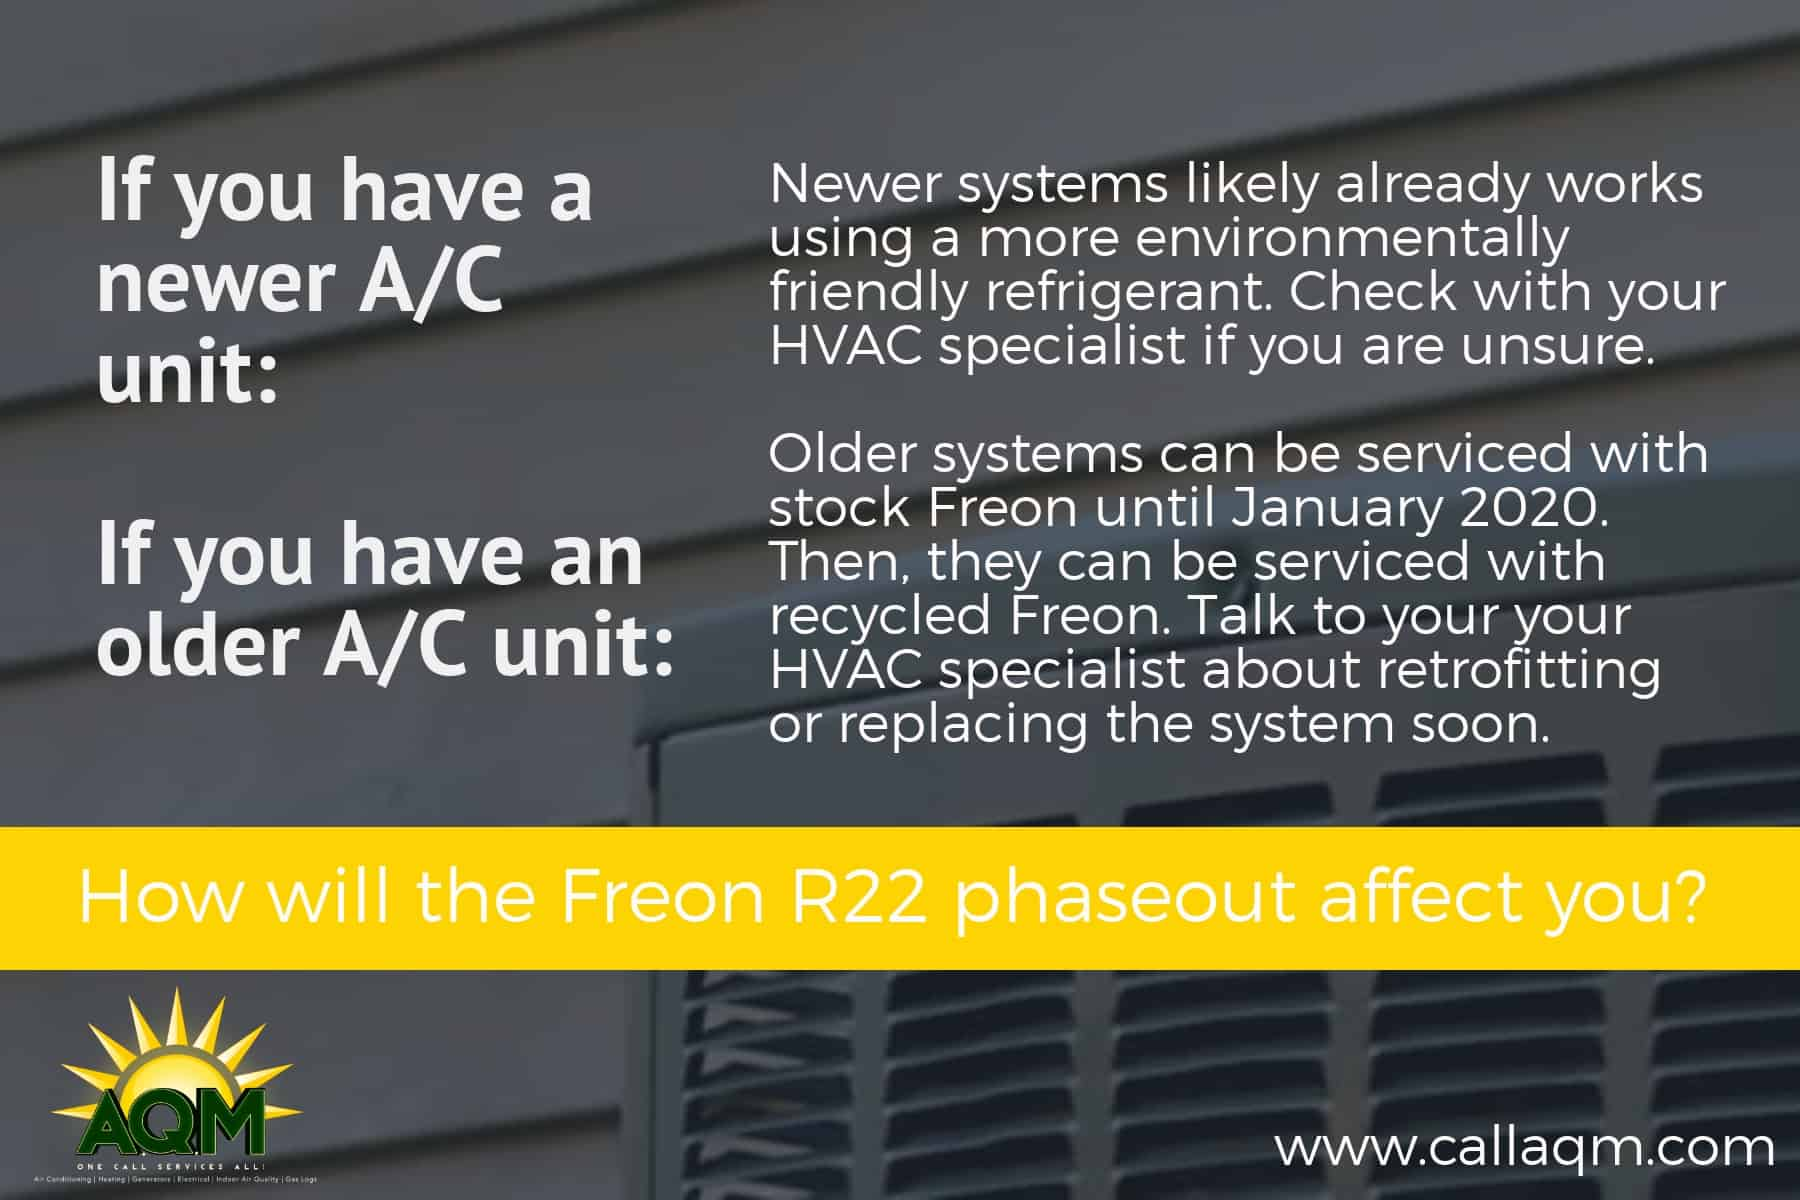 Information about air conditioning units running on Freon related to new 2020 regulations.